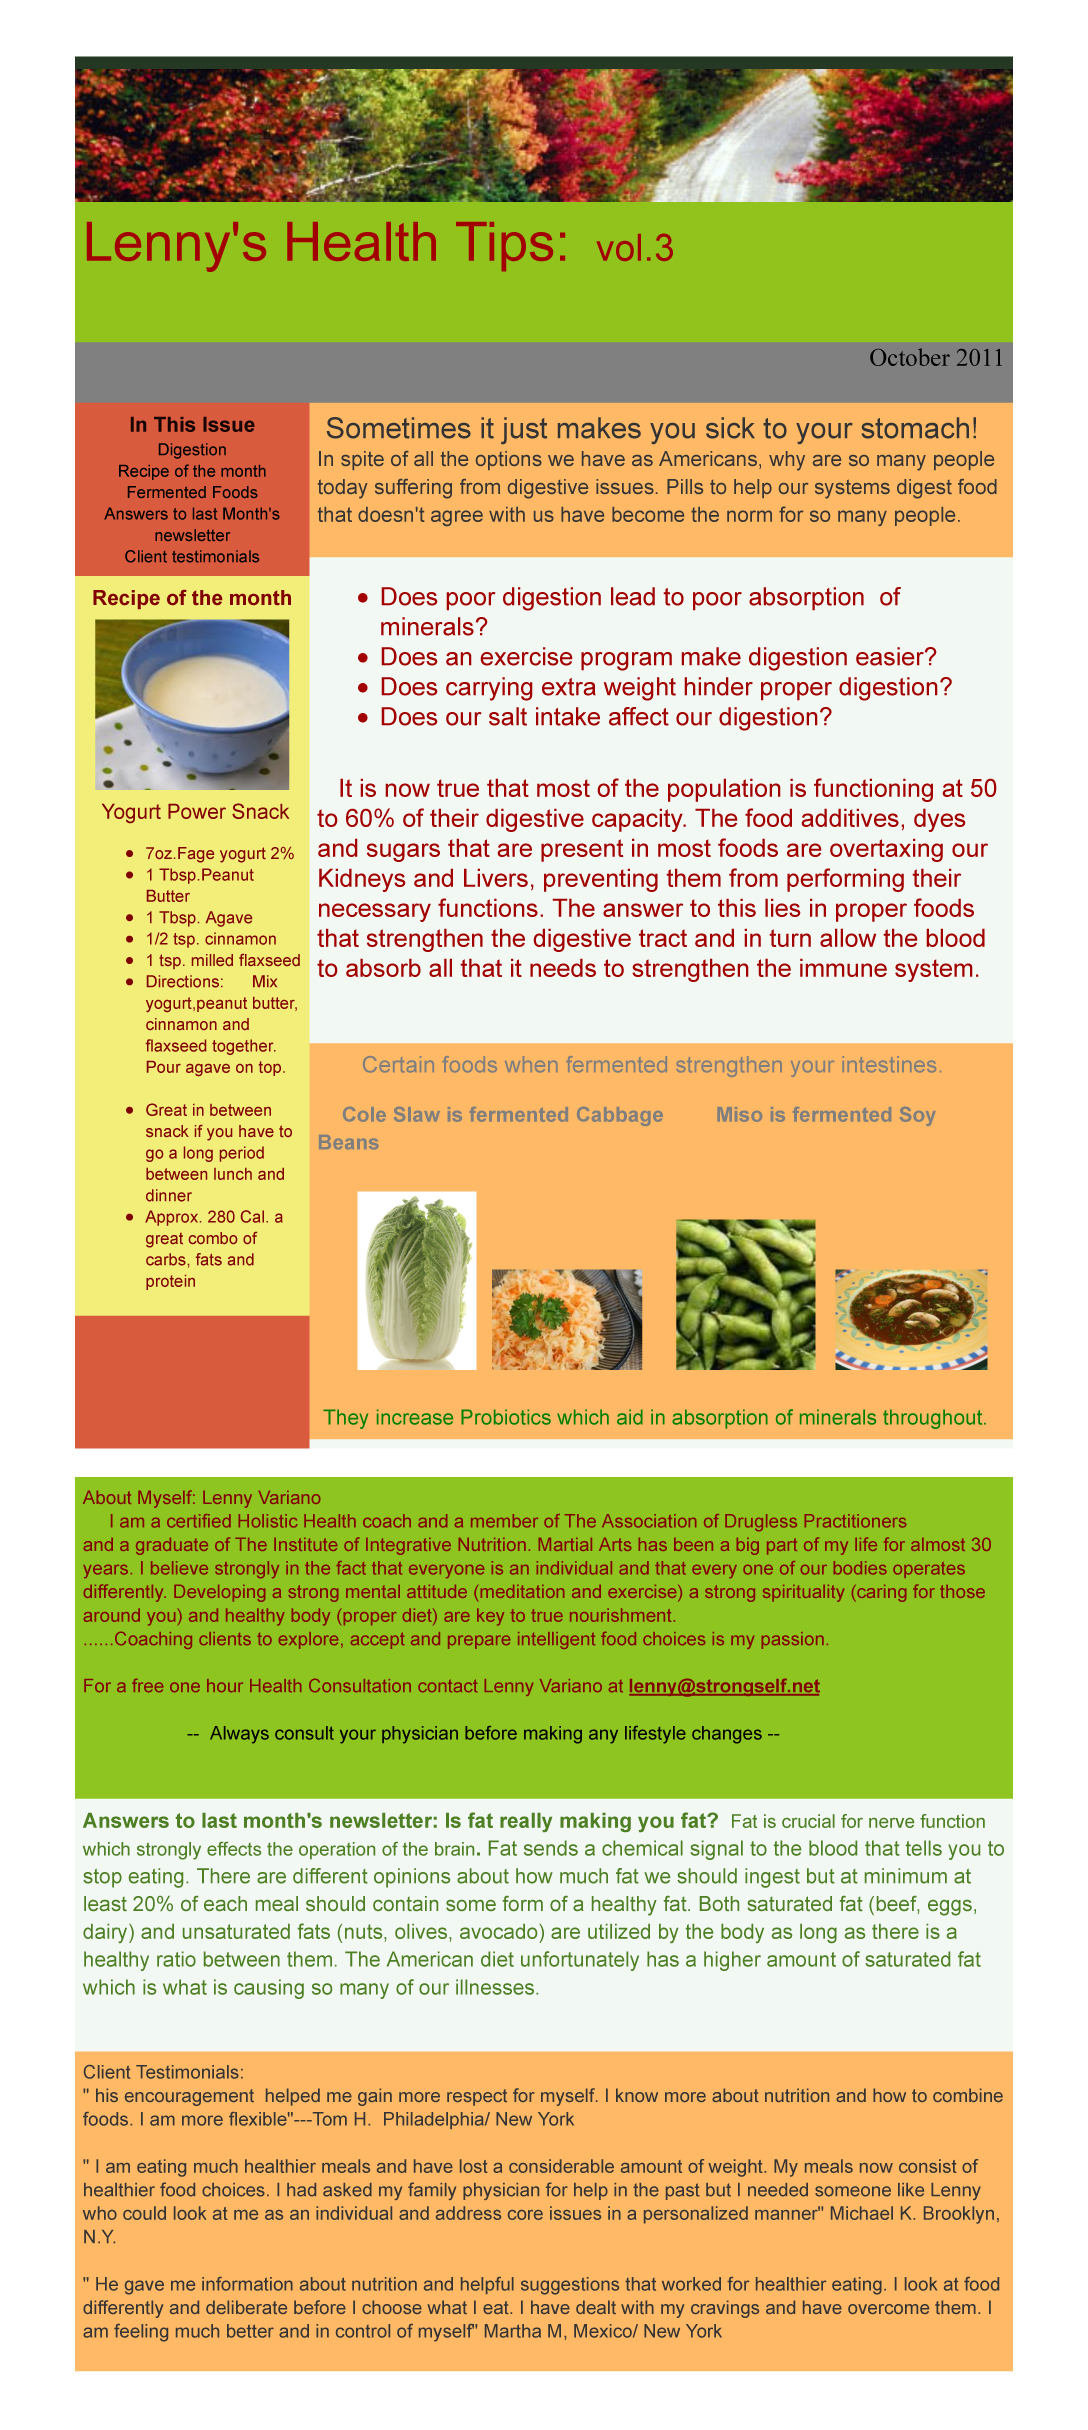 Healthy Tips Newsletter from October 2011